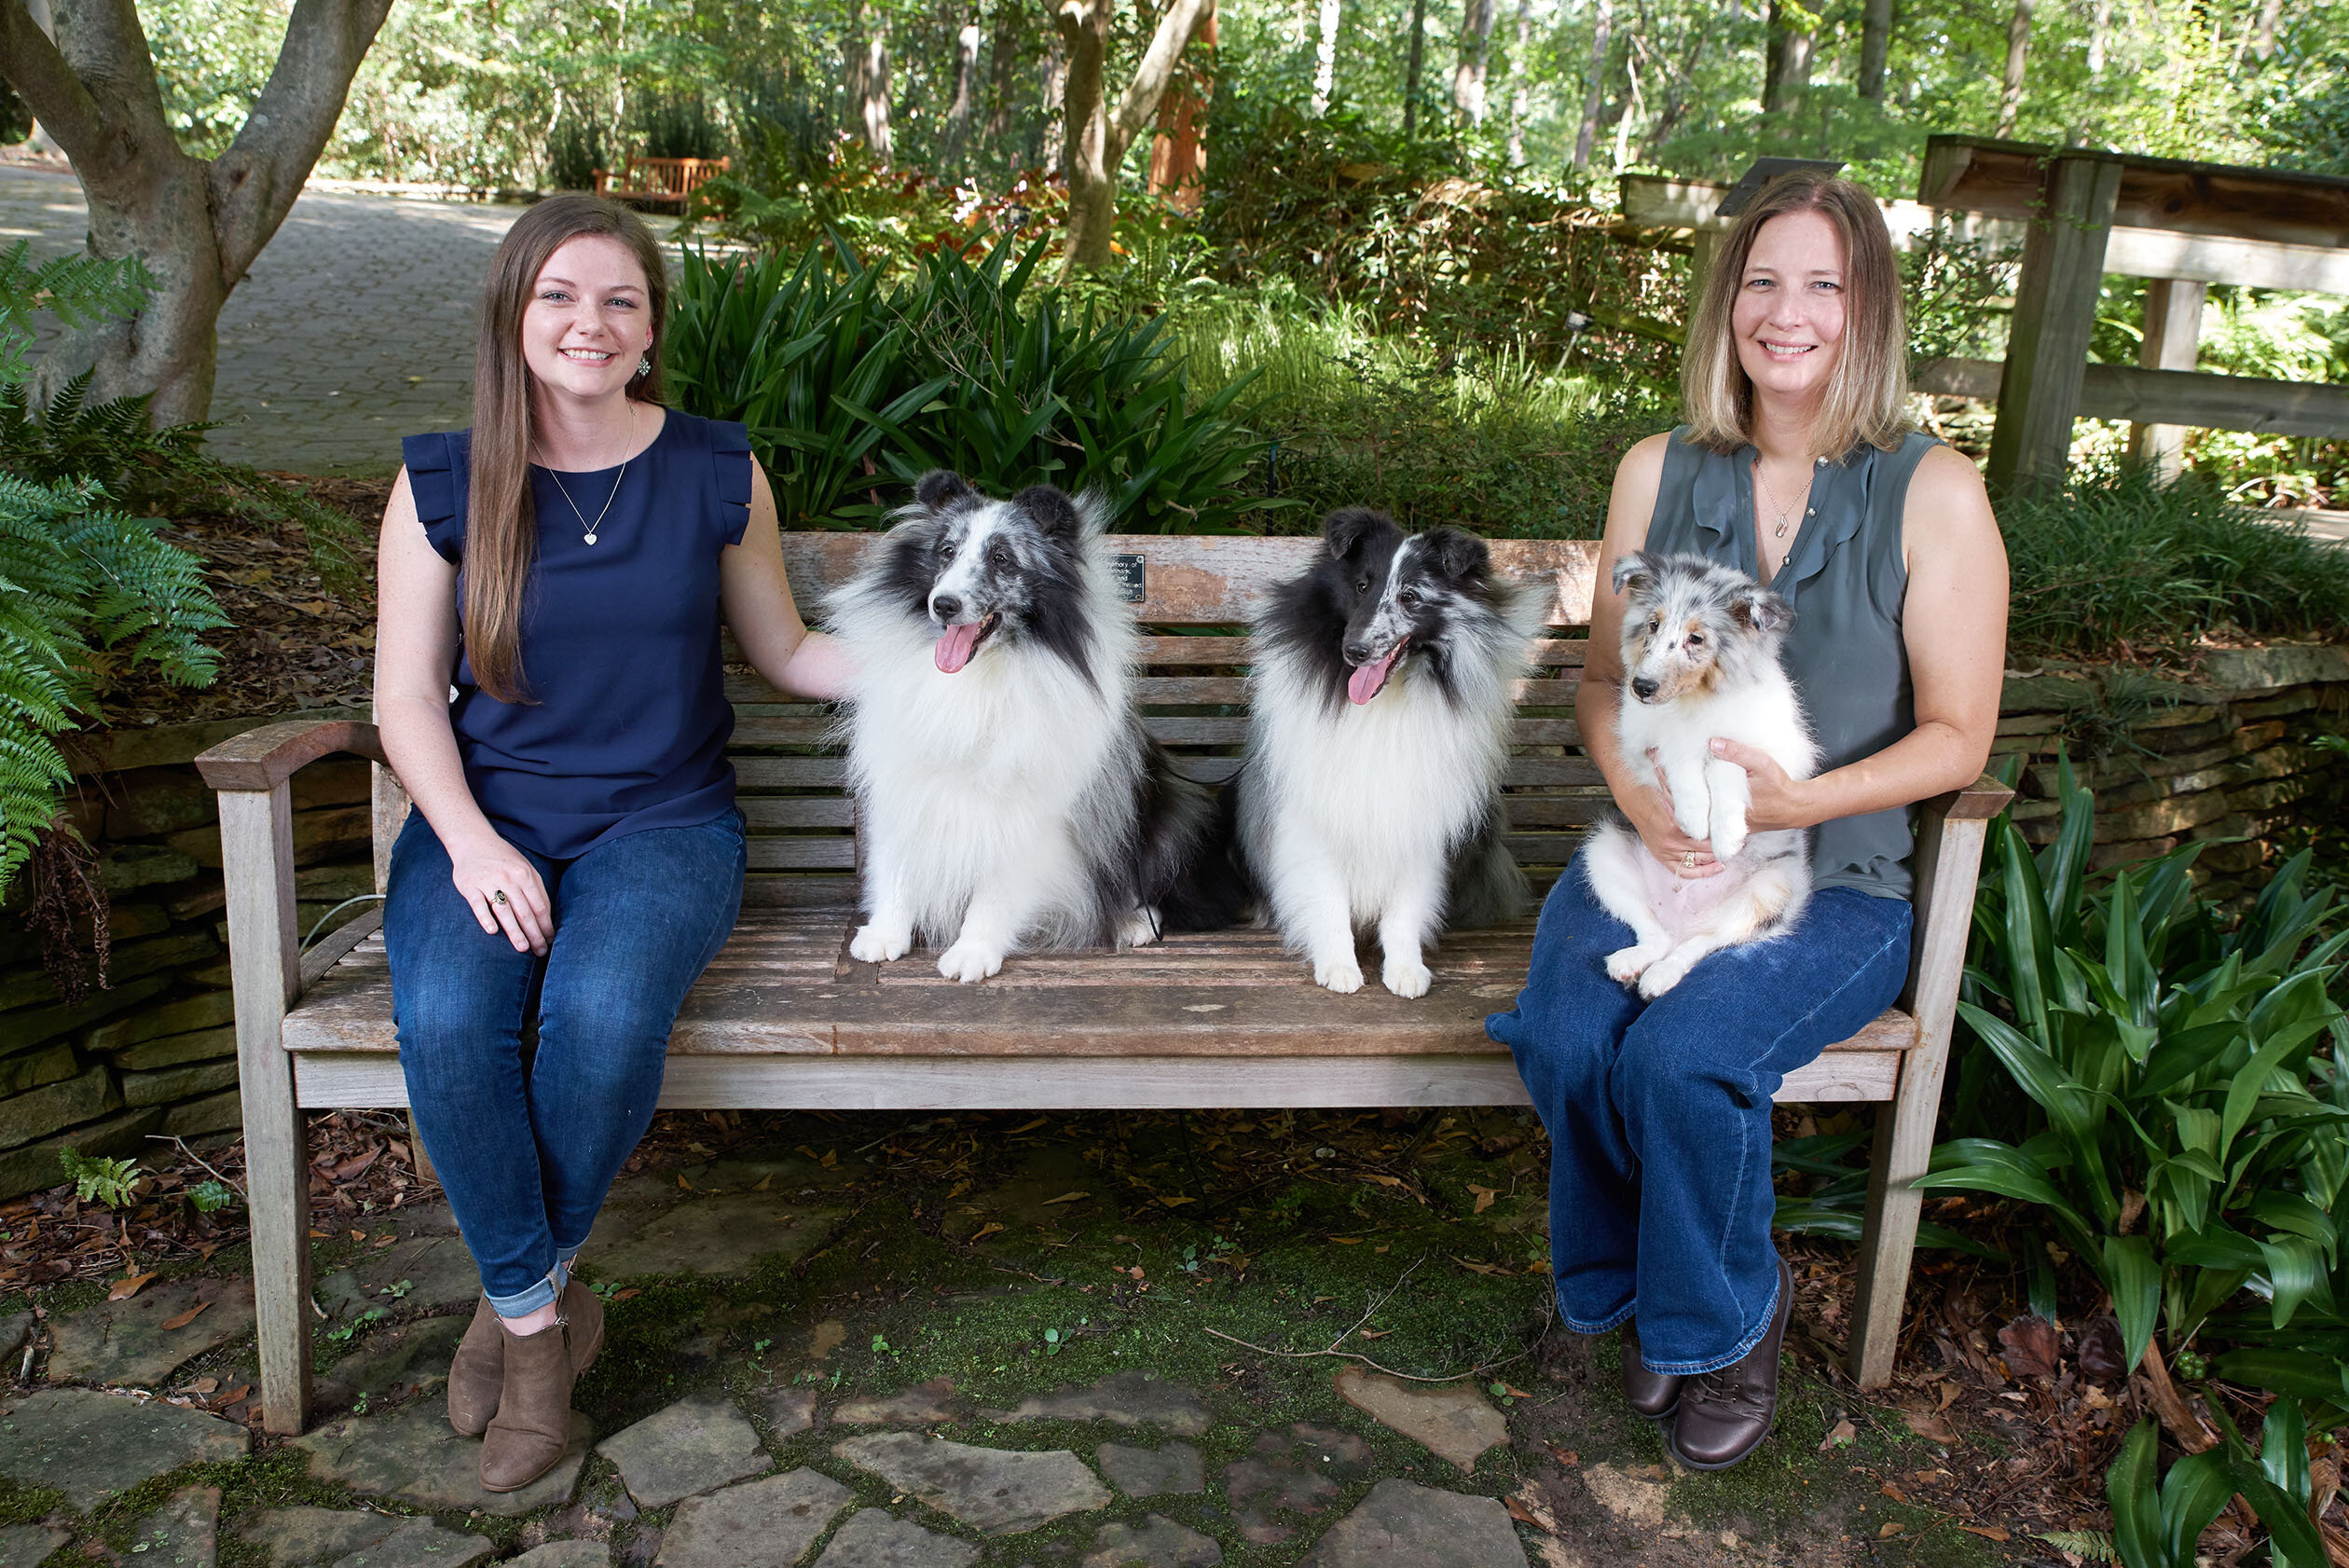 New research identifies genetic factors contributing to small body size in dogs